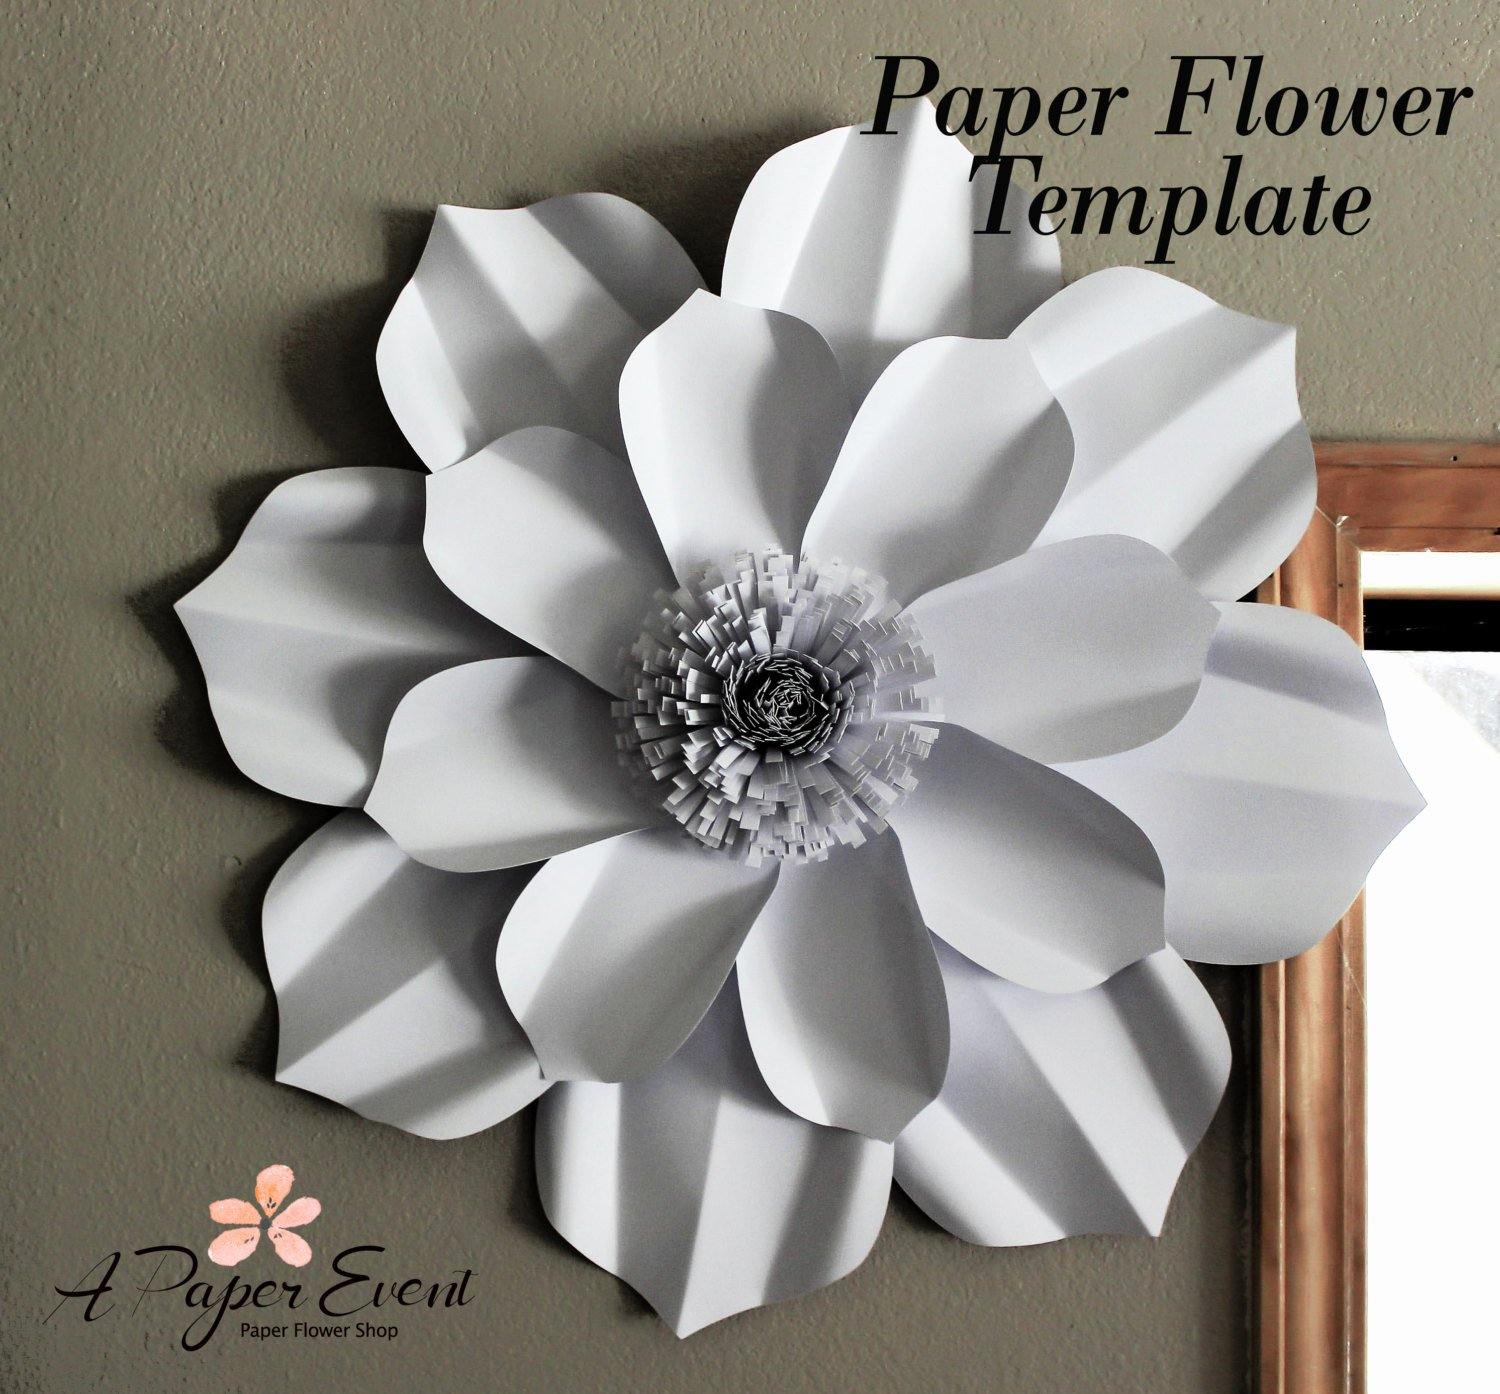 Paper Flower Backdrop Template Elegant Paper Flower Template Diy Paper Flower Diy Backdrop Paper